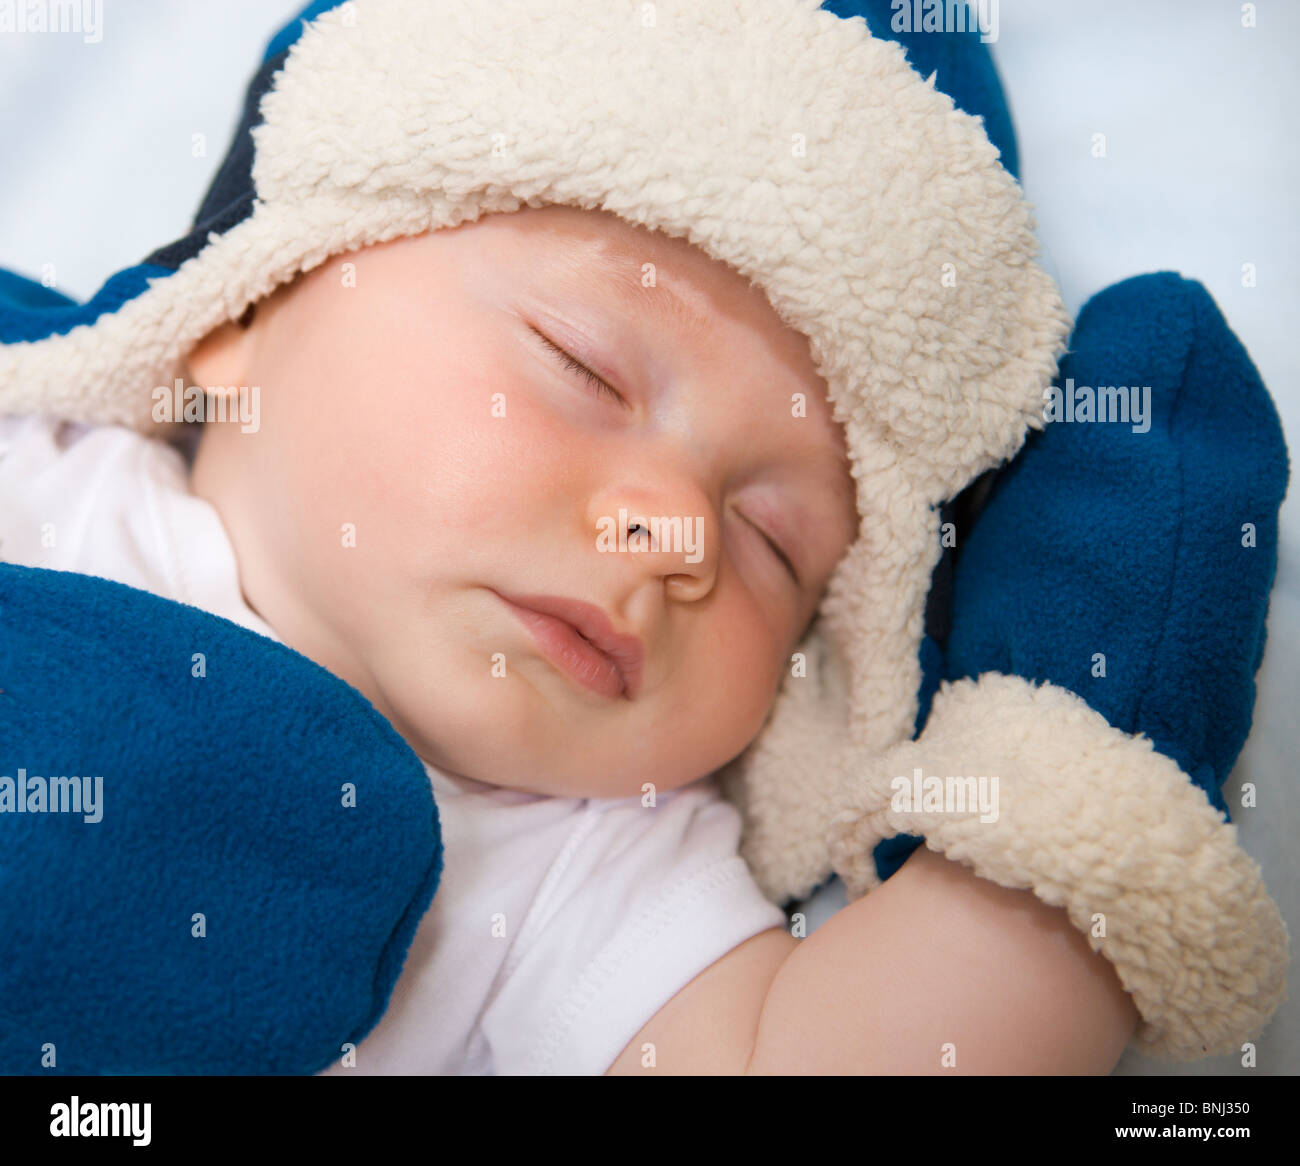 Beautiful 4 month old baby in hat sleeping Stock Photo  30515772 - Alamy 3743bf04494